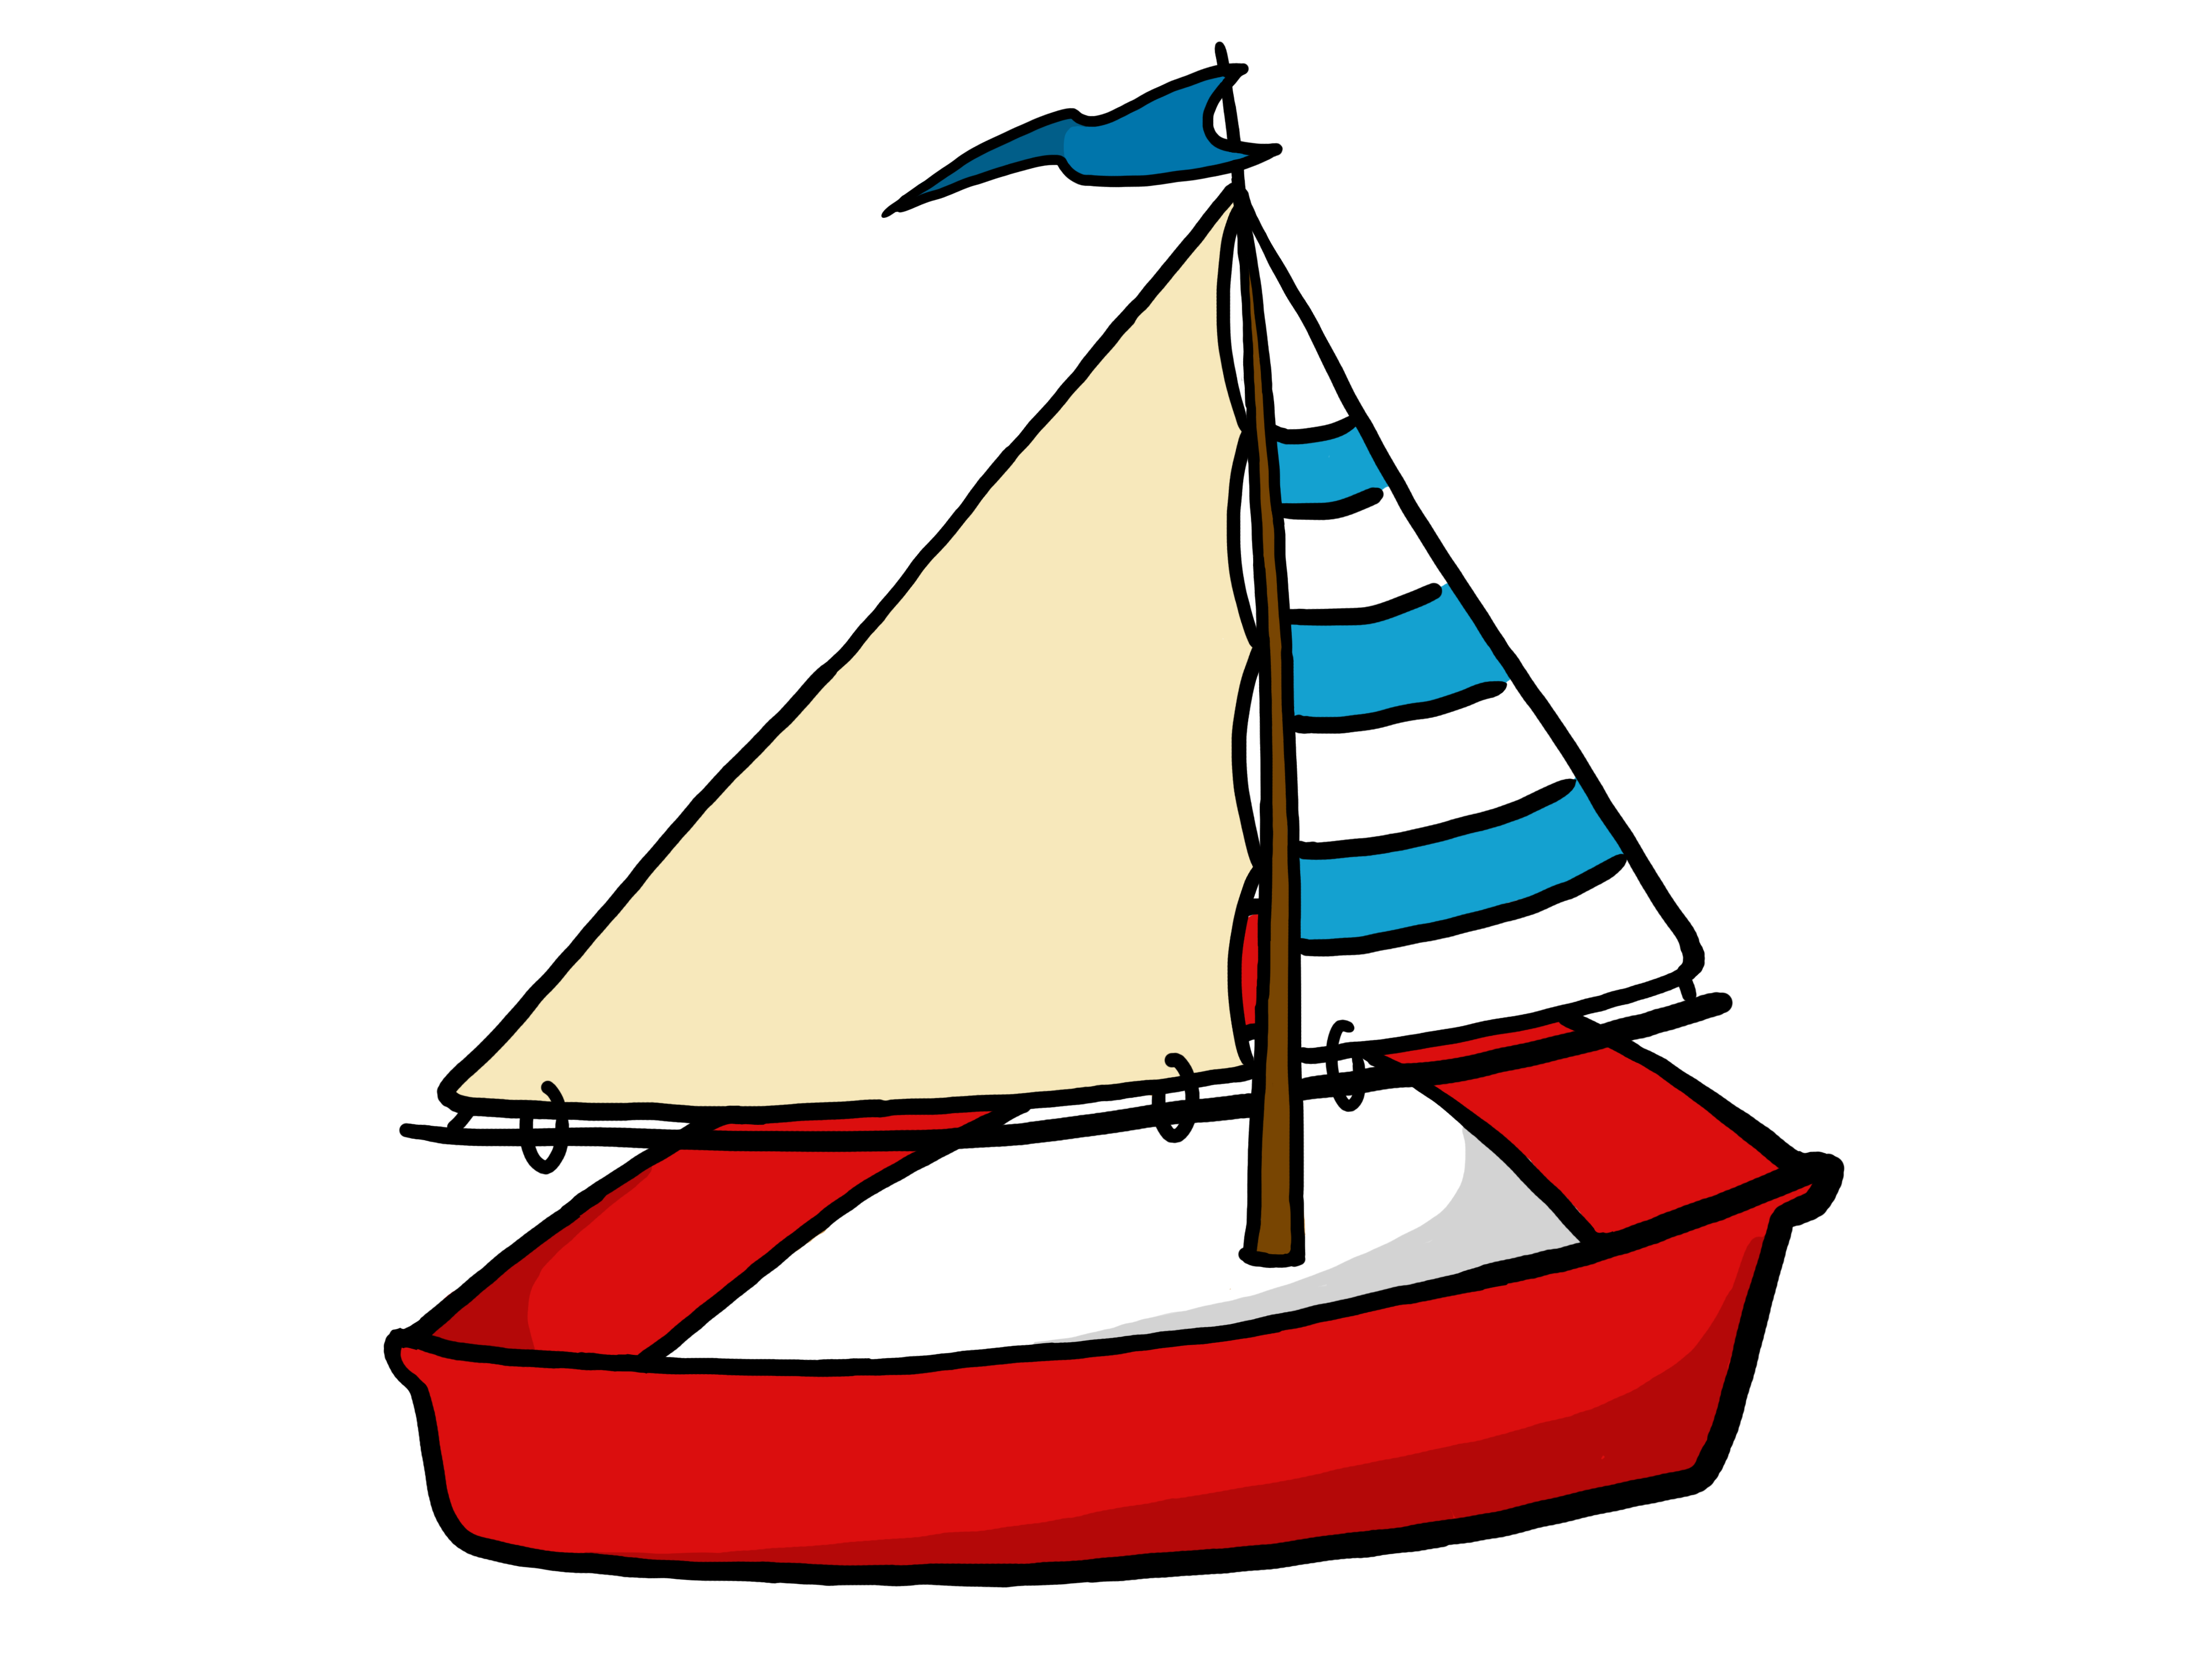 Boating panda free images. Boat clipart transparent background